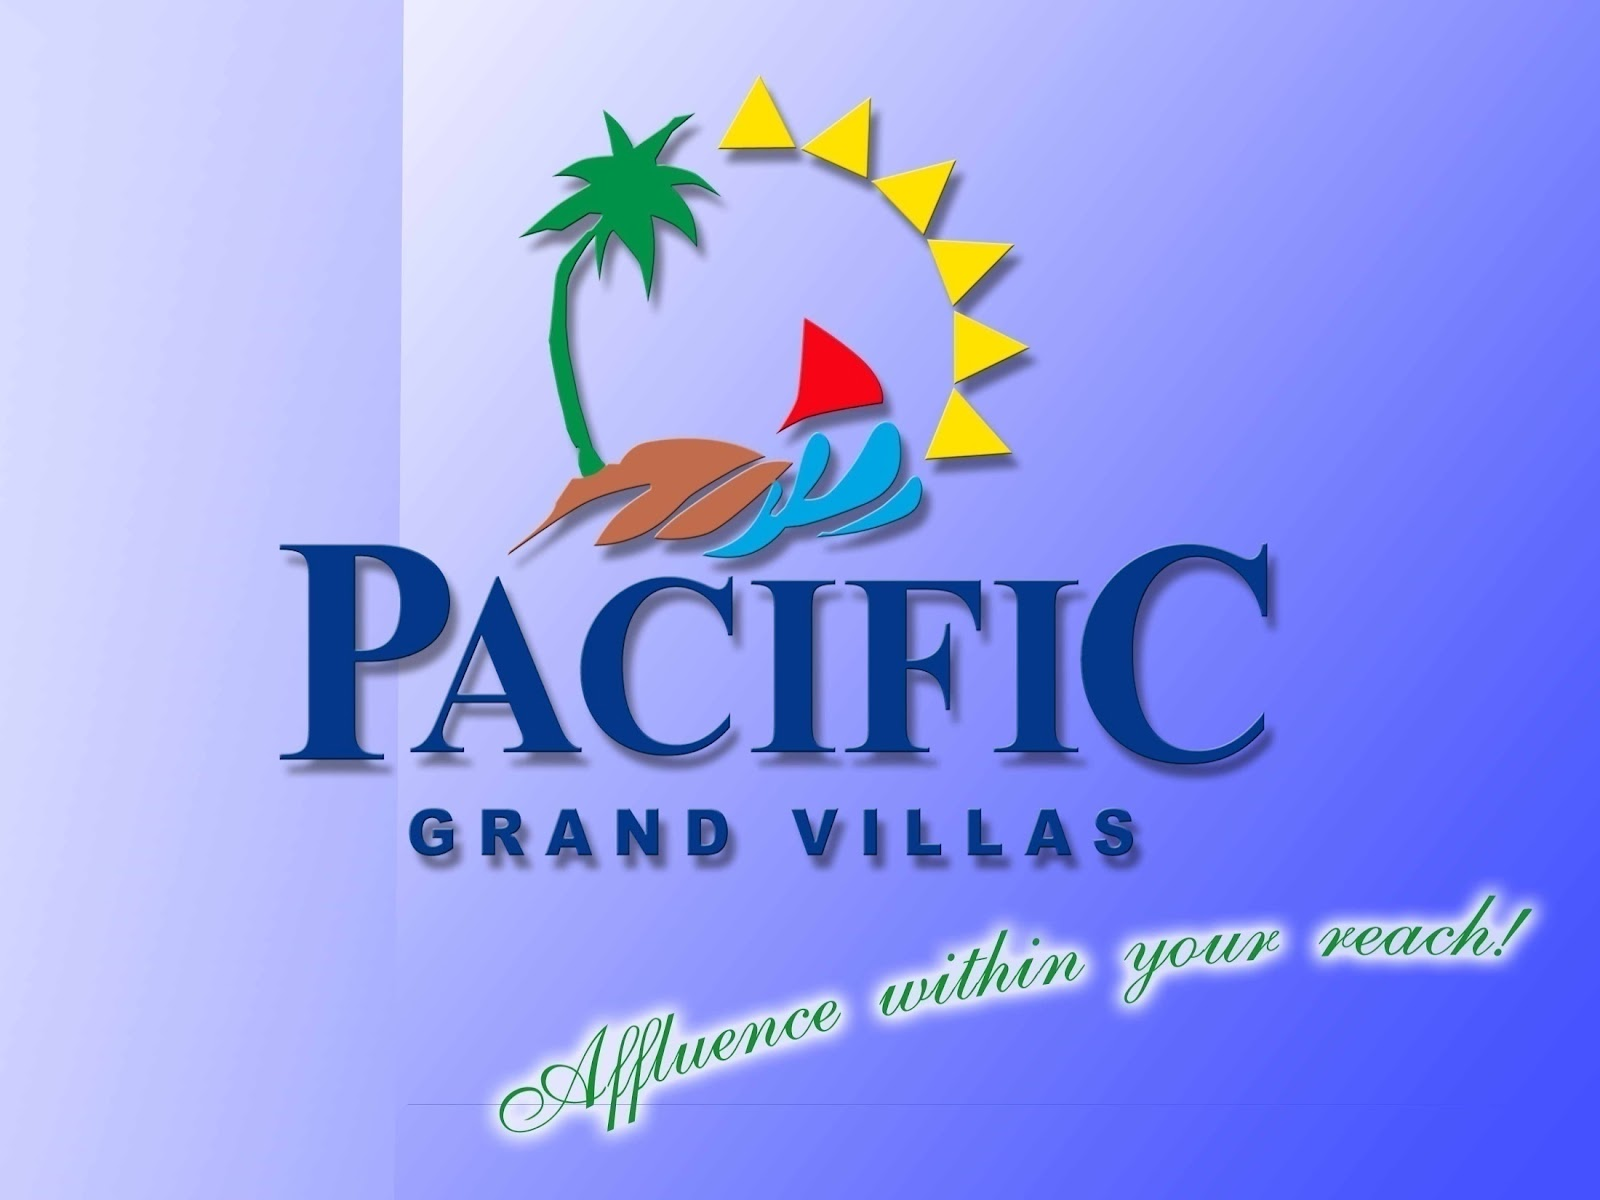 Tips and guides in a travel affluence within your reach for Pacific grand